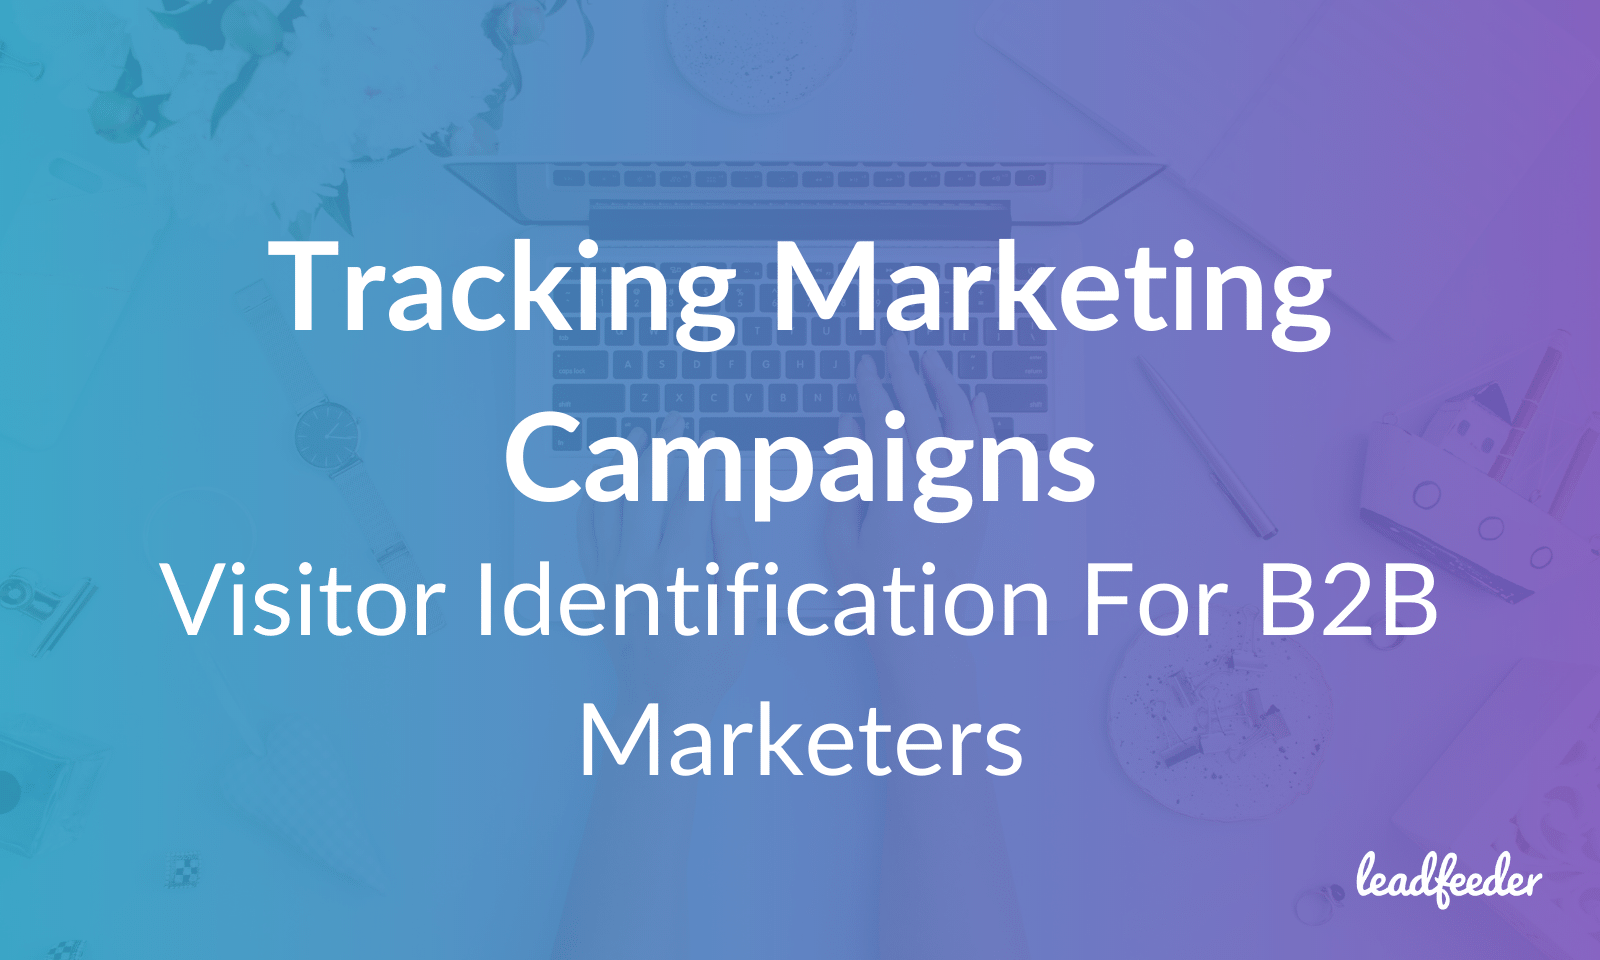 Tracking Marketing Campaigns: How Visitor Identification Gives B2B Marketers More Complete Data